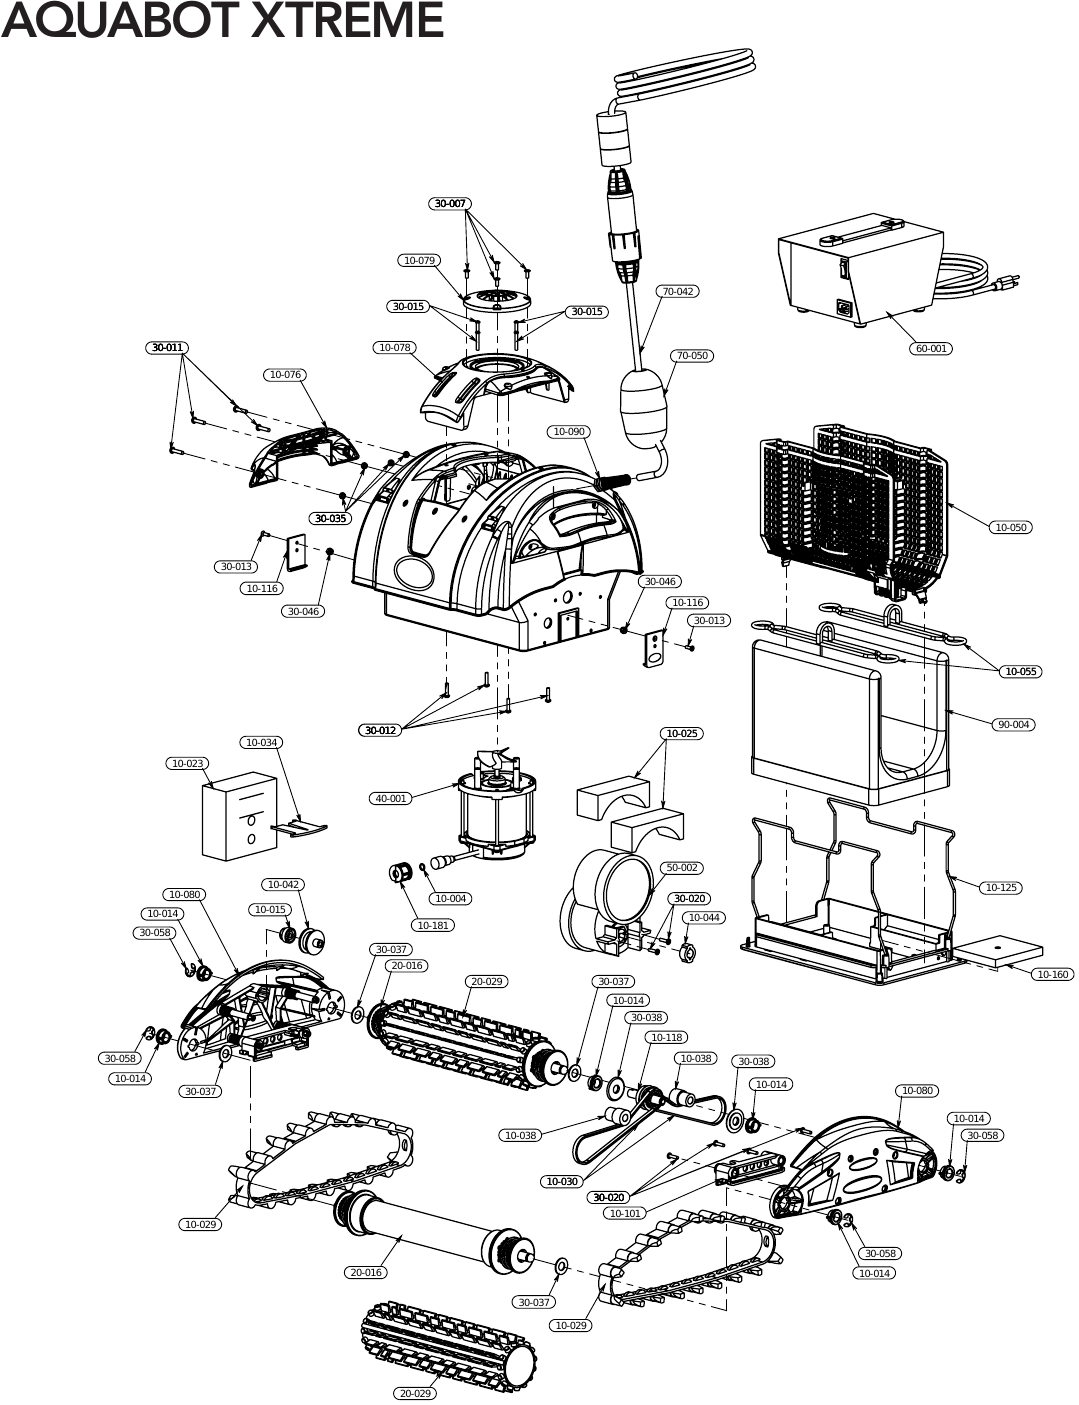 Pool and Spa Parts - Automatic Pool Cleaner Parts - Aquabot ... Aquabot Wiring Diagram on mosquito magnet wiring diagram, a.o. smith wiring diagram, apc wiring diagram, ace wiring diagram, coleman wiring diagram, blue wave wiring diagram, dcs wiring diagram, generic wiring diagram, jacuzzi wiring diagram, aqua-flo wiring diagram, panasonic wiring diagram, raypak wiring diagram, autopilot wiring diagram, little giant wiring diagram, hayward wiring diagram, viking wiring diagram, apache wiring diagram, aquacal wiring diagram, jandy wiring diagram, taylor wiring diagram,